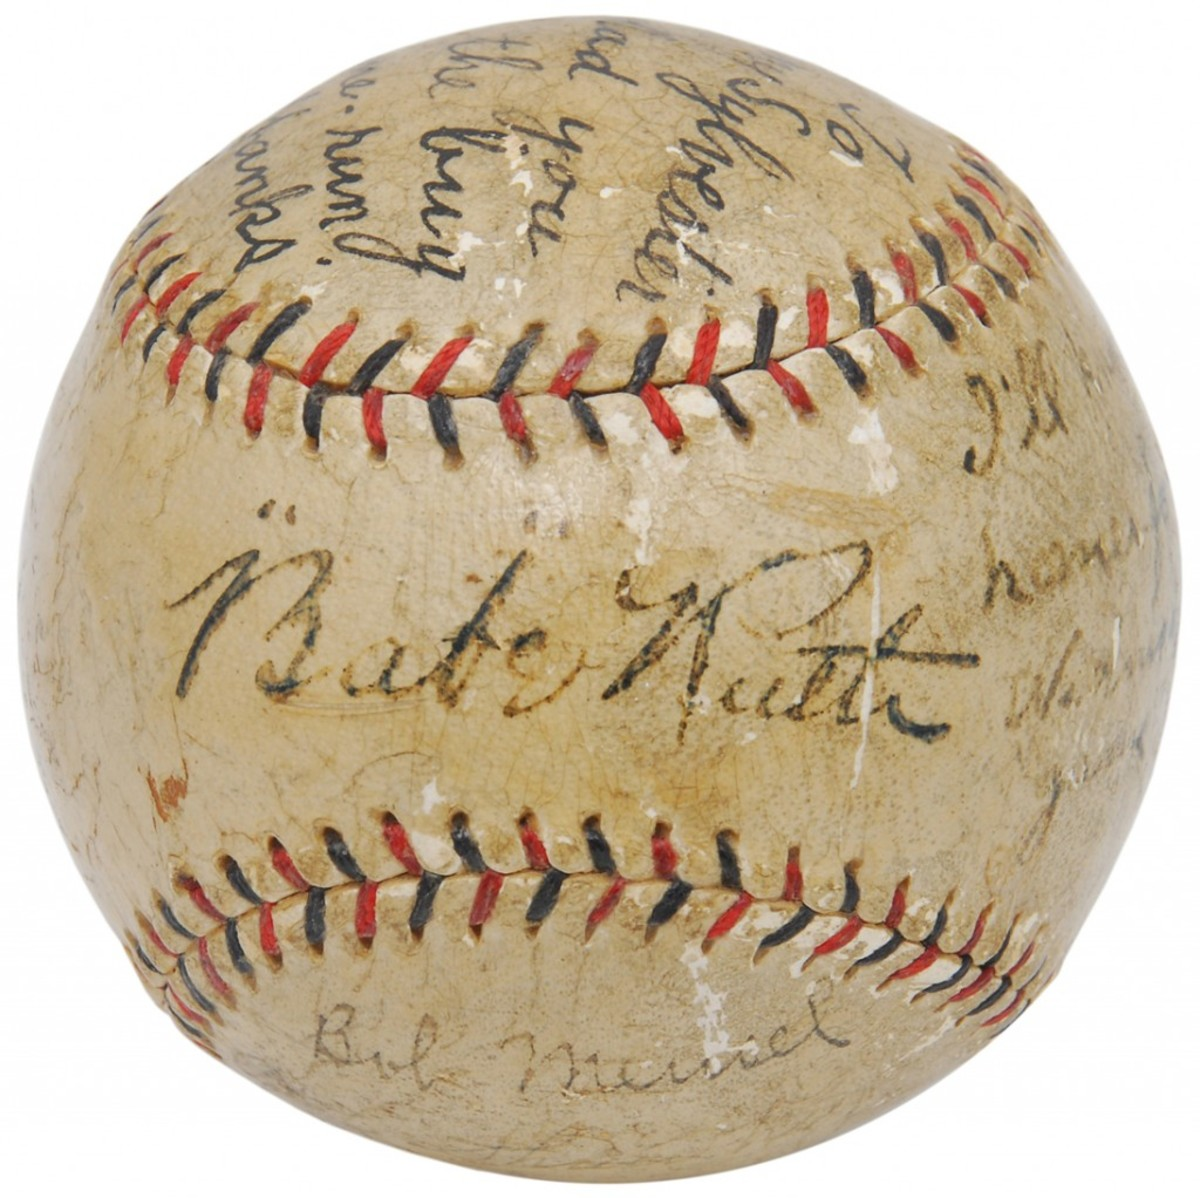 "The ""I'll Knock a Homer For You"" baseball autographed by Babe Ruth and inscribed by five other New York Yankees. Grey Flannel Auctions image."